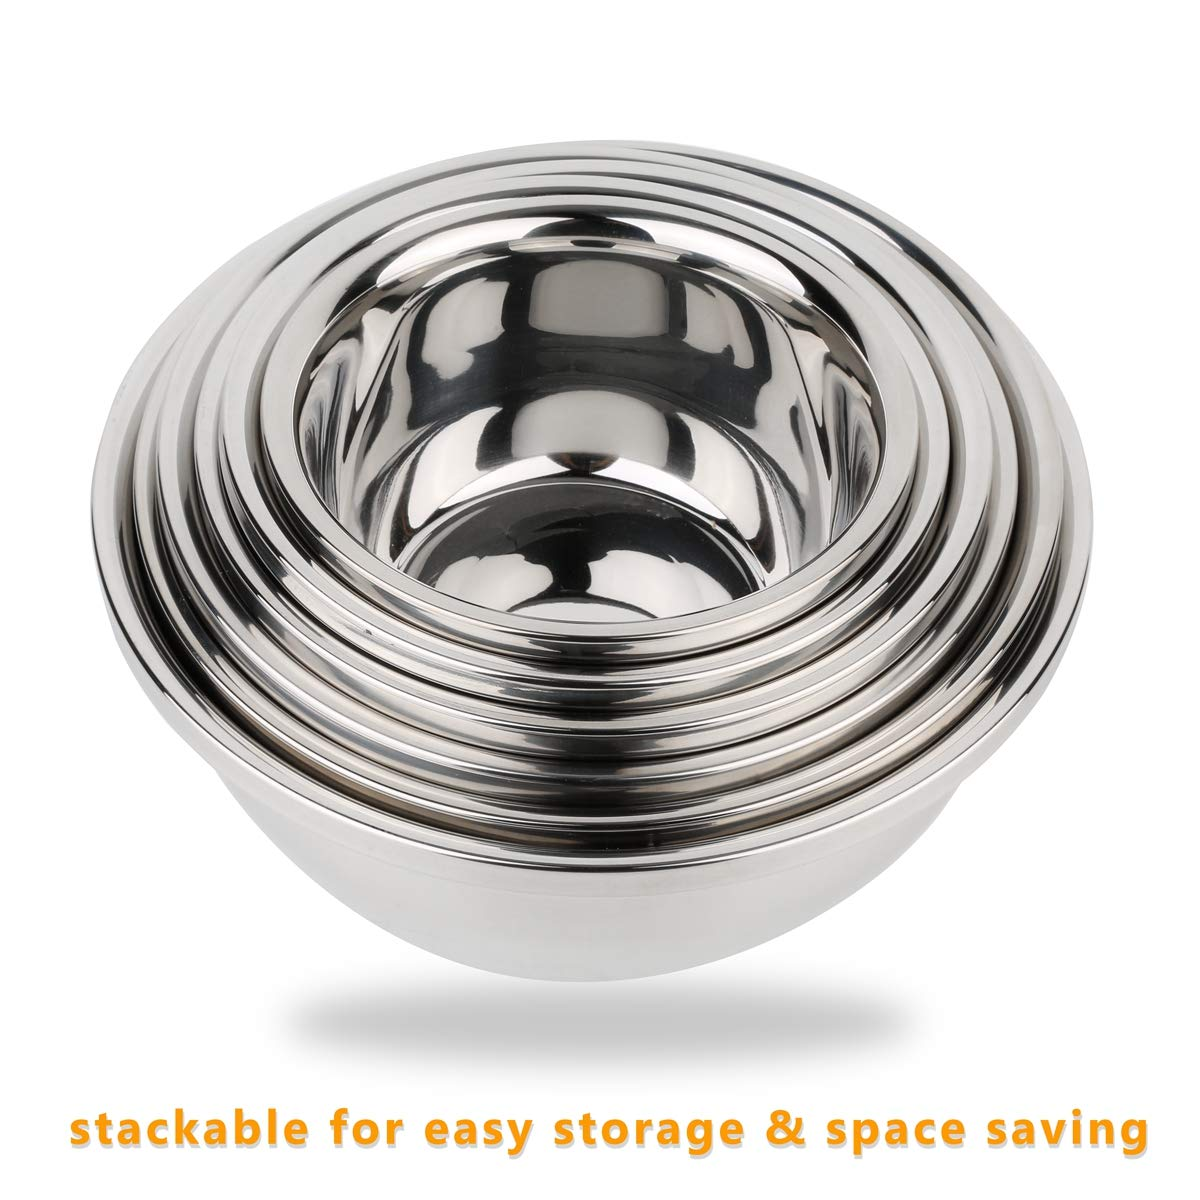 Set of 6 Mixing Bowls Stainless Steel Nesting and Convenient Storage for Meal prep, Salad, Cooking, Baking, Serving by SOFFBERG (Image #4)